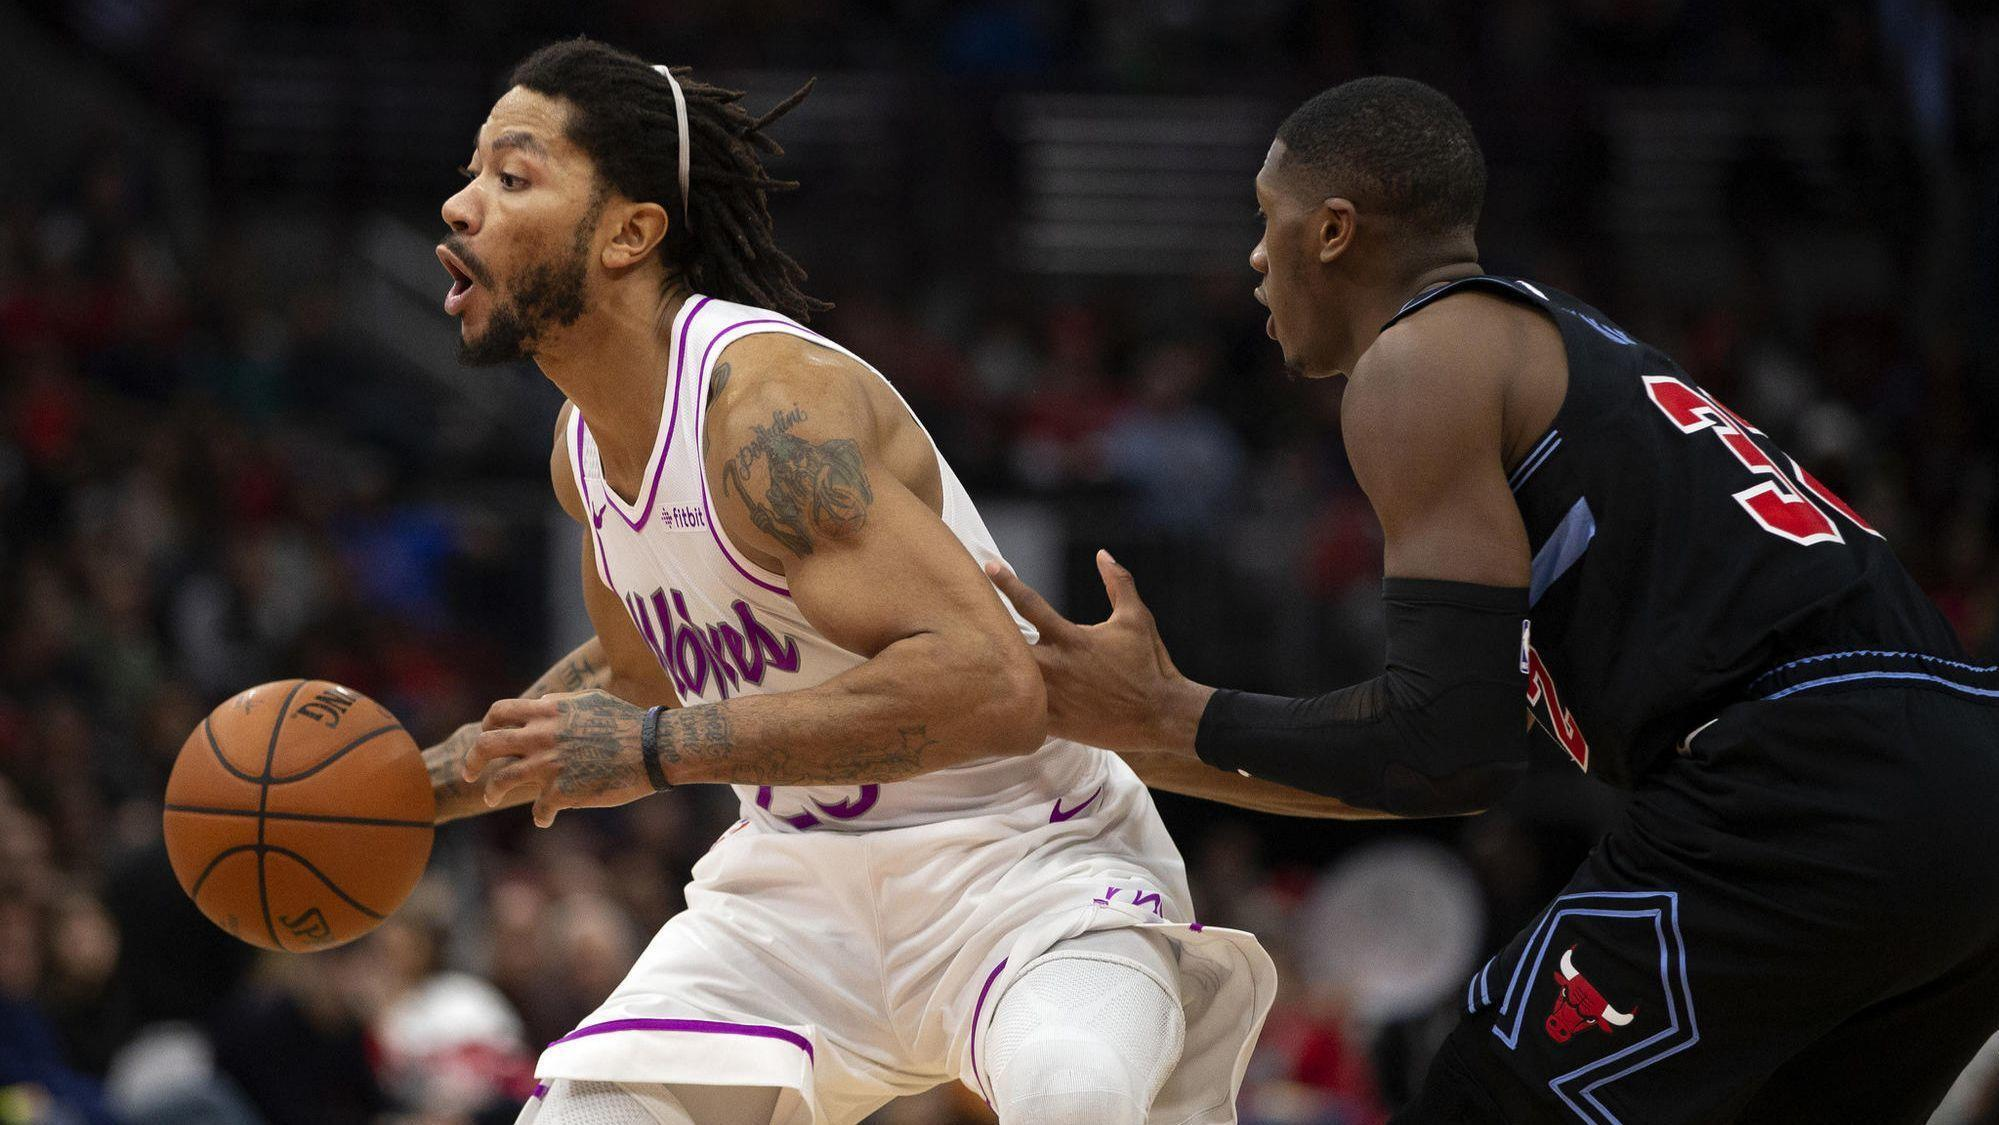 b7b3580e84ac Derrick Rose thrills his hometown crowd while leading the Timberwolves past the  Bulls 119-94 - Chicago Tribune